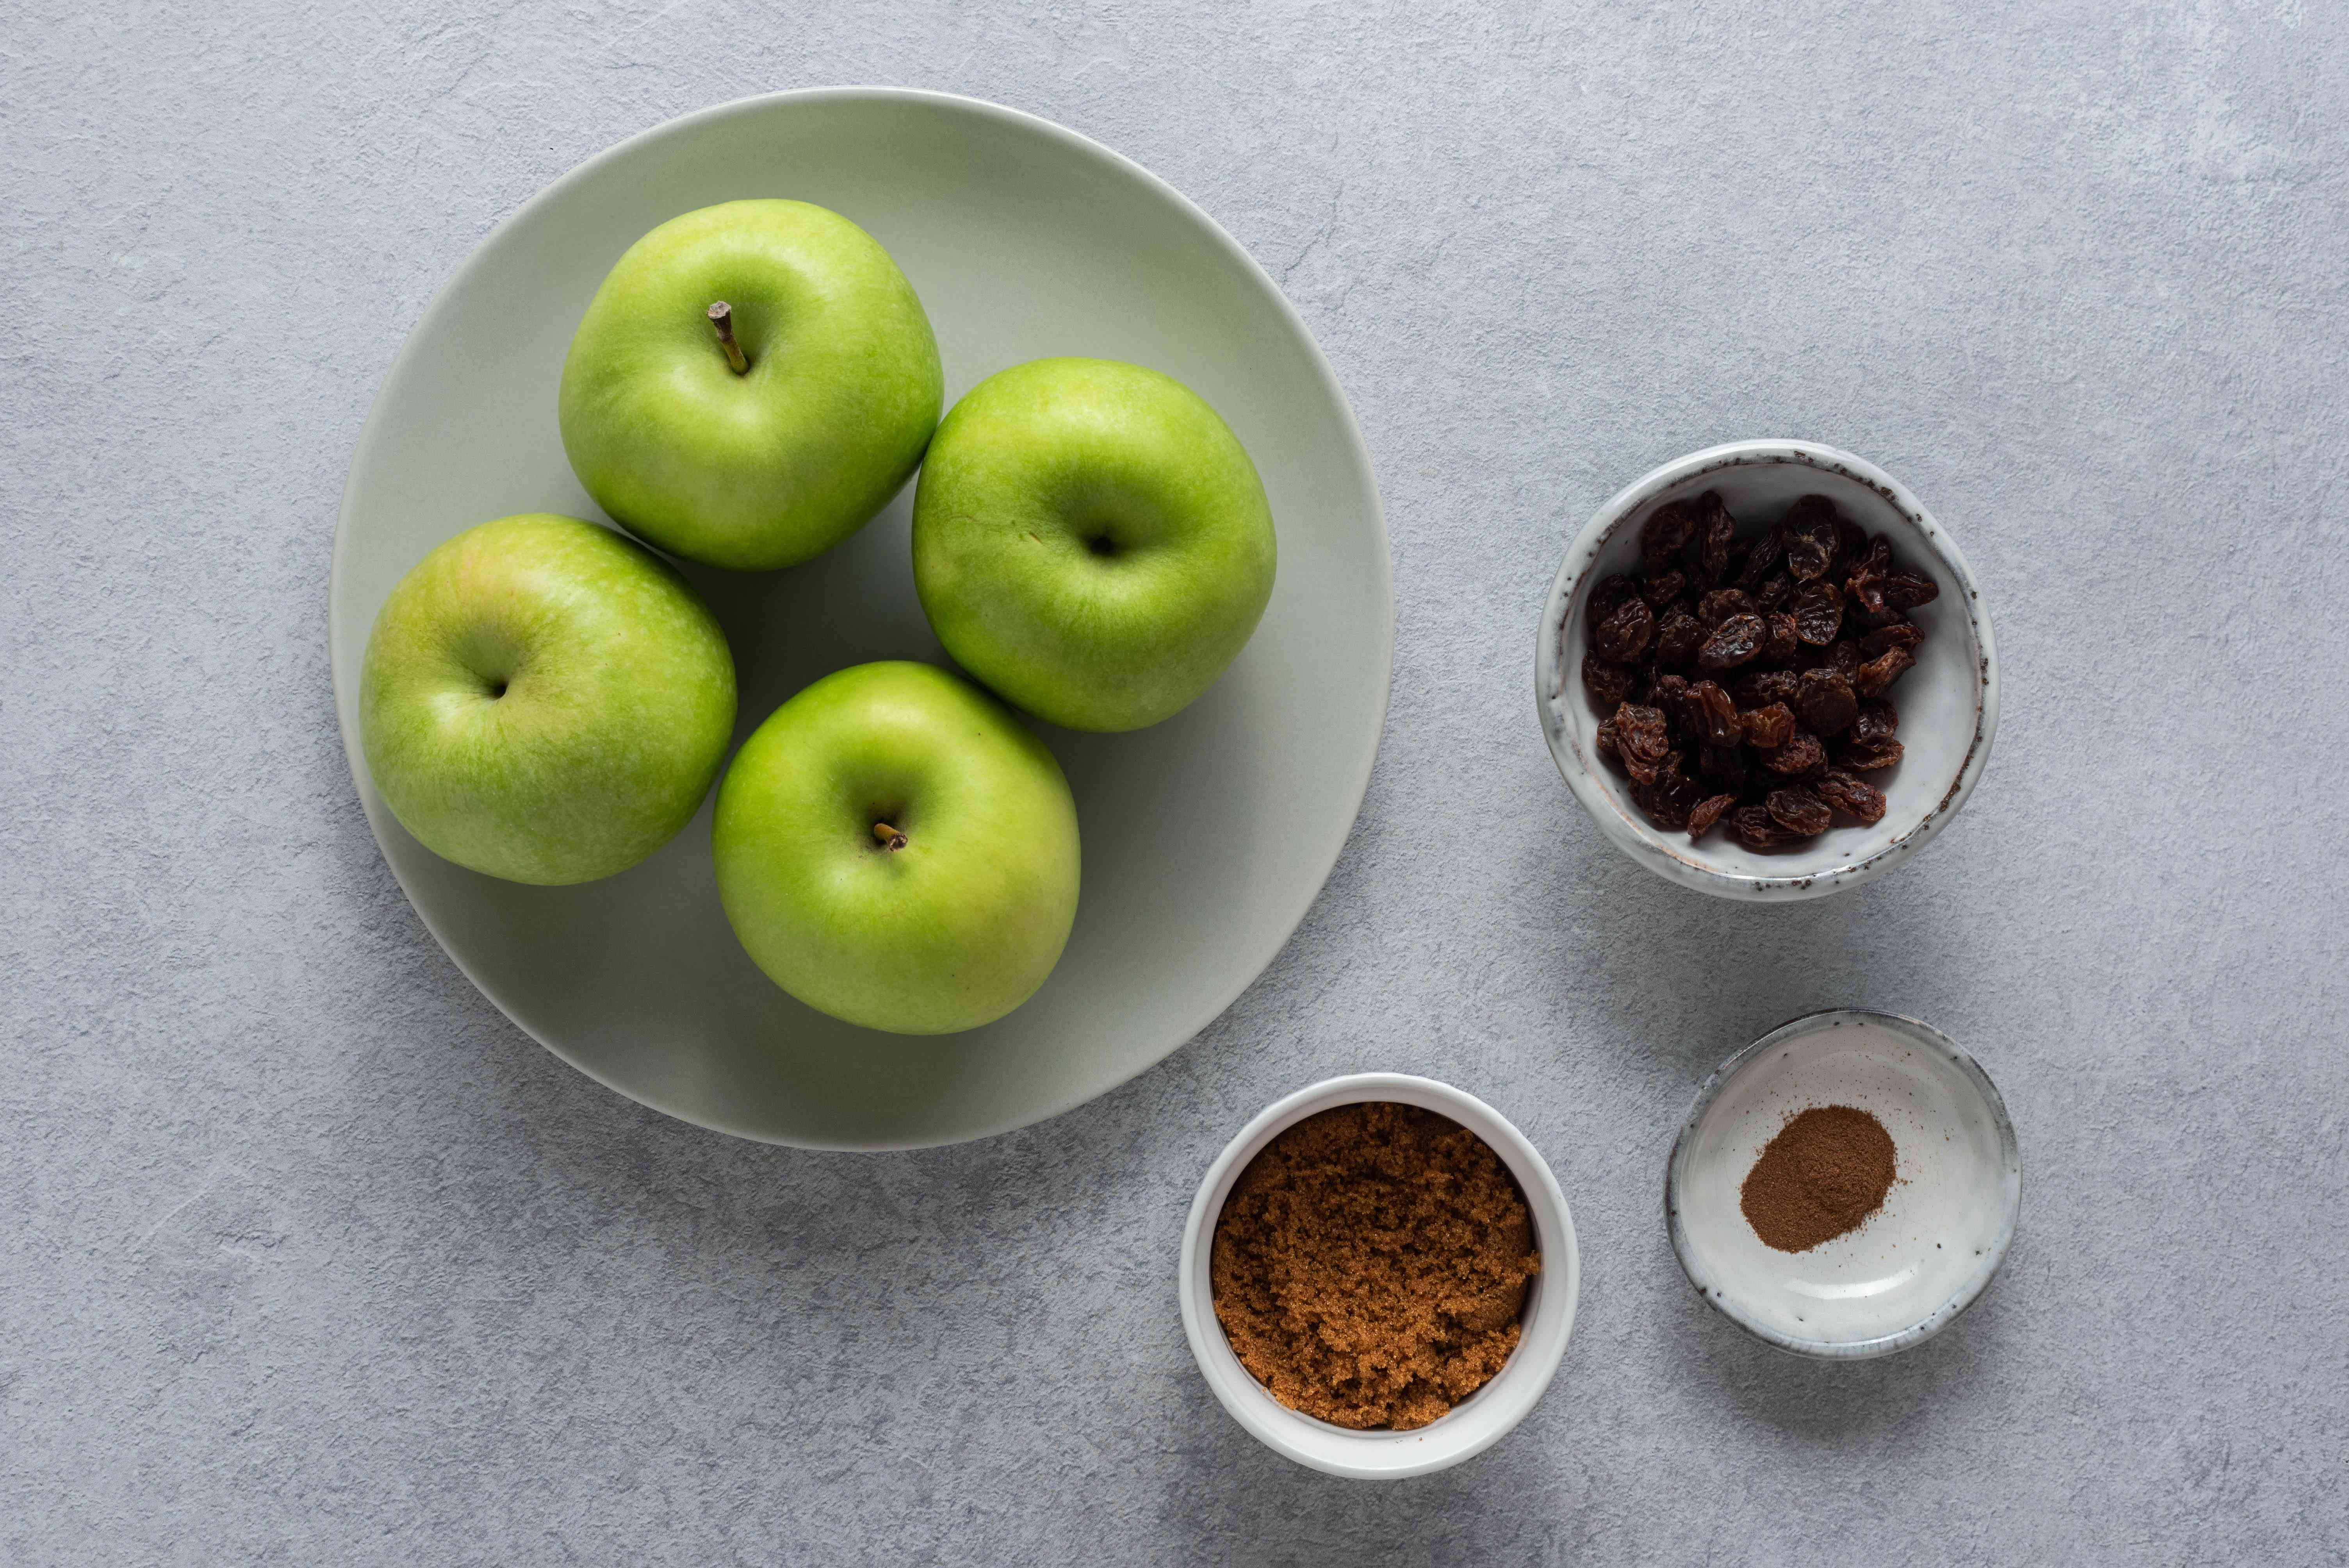 Low-calorie baked apples ingredients